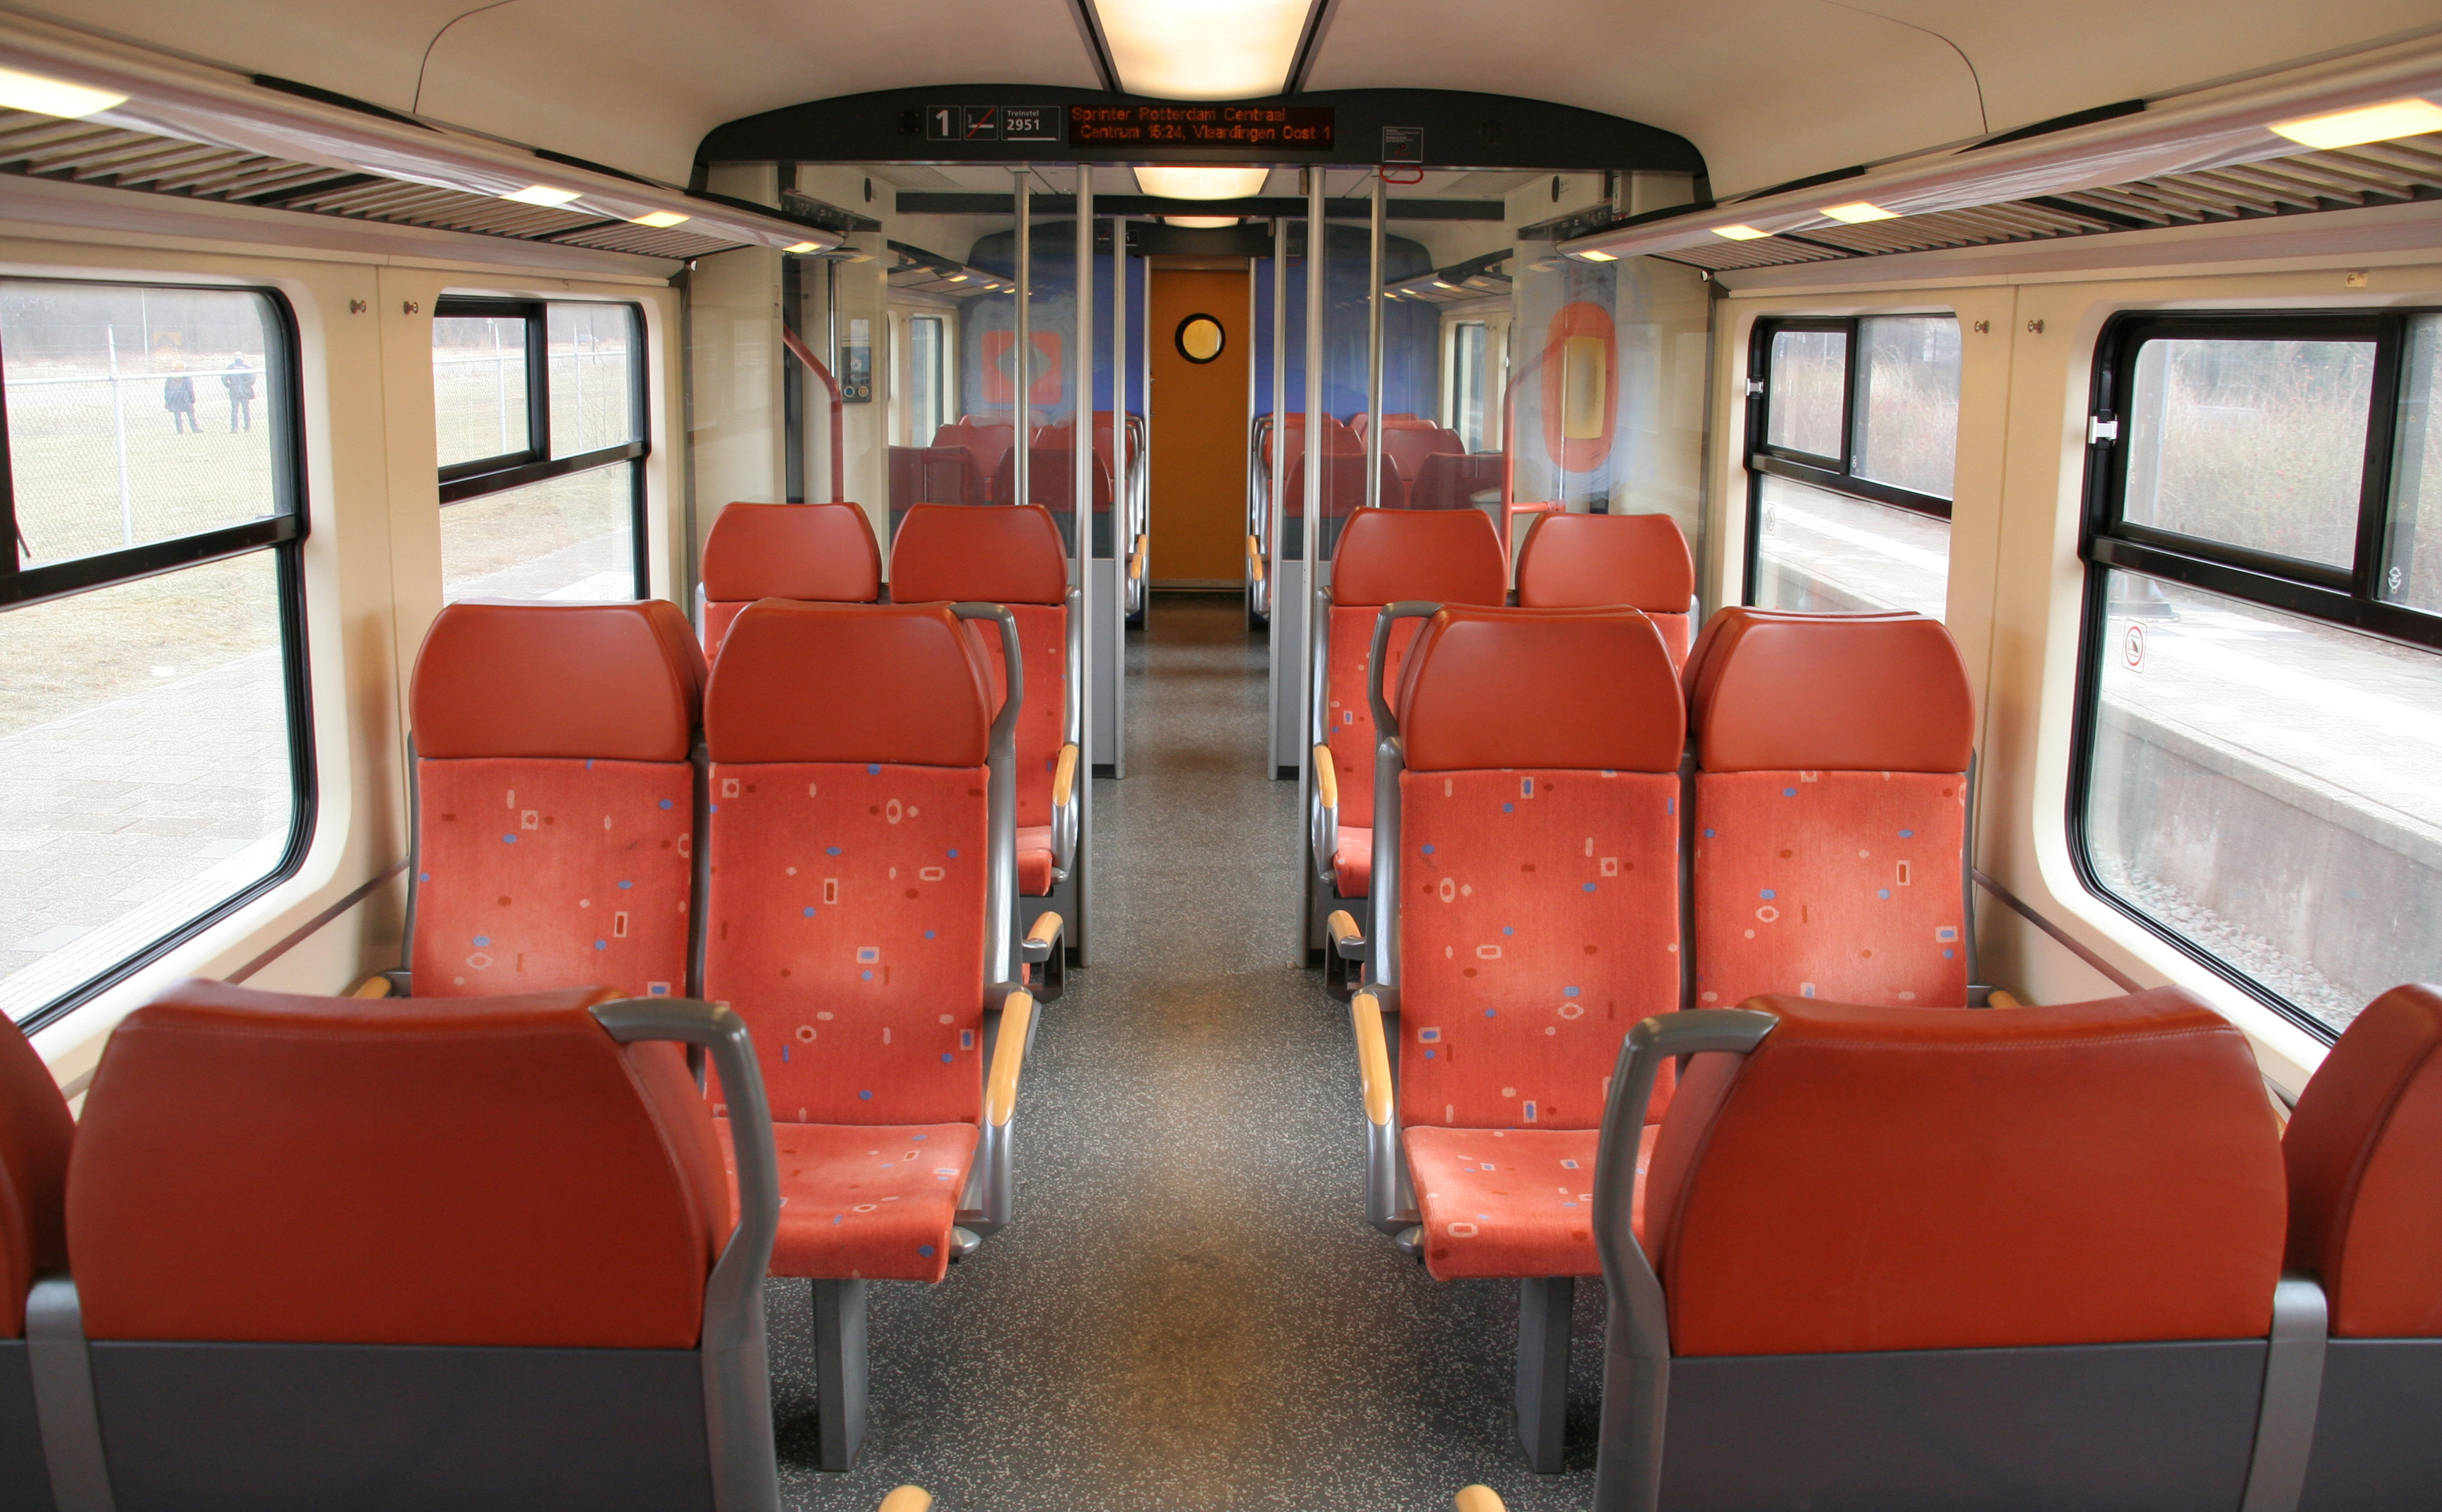 File:Sprinter Interieur 2e klas.jpg - Wikipedia